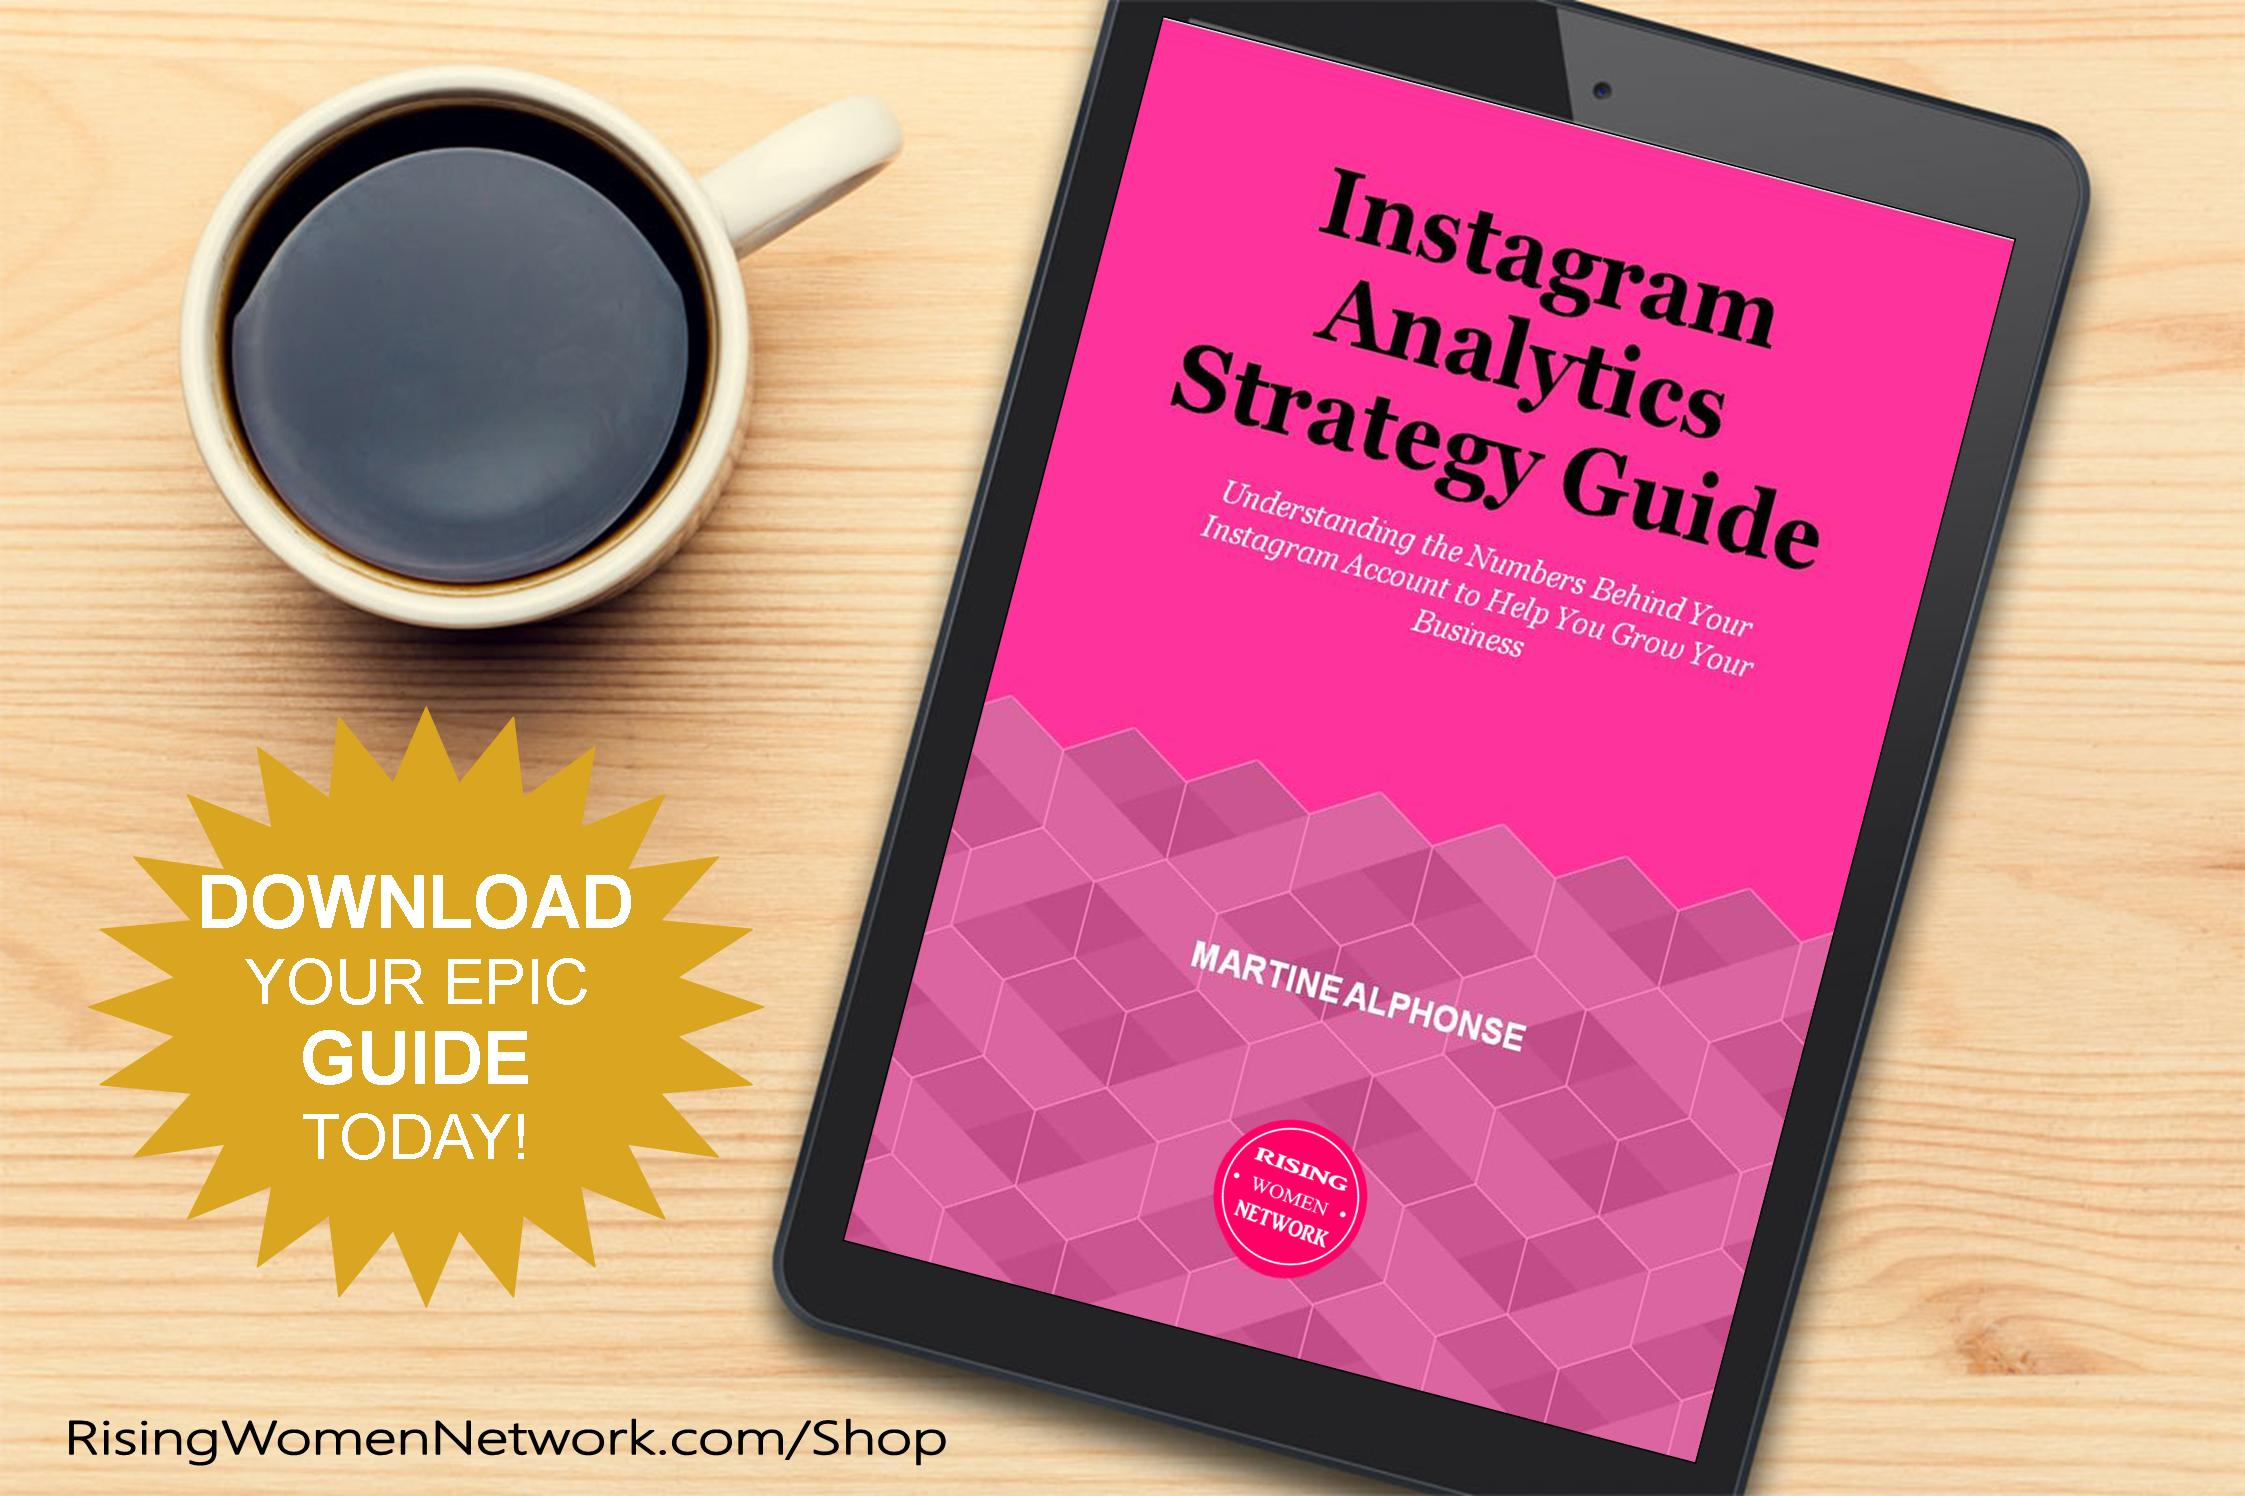 How to Grow Your Business with Instagram Analytics (Epic Guide)